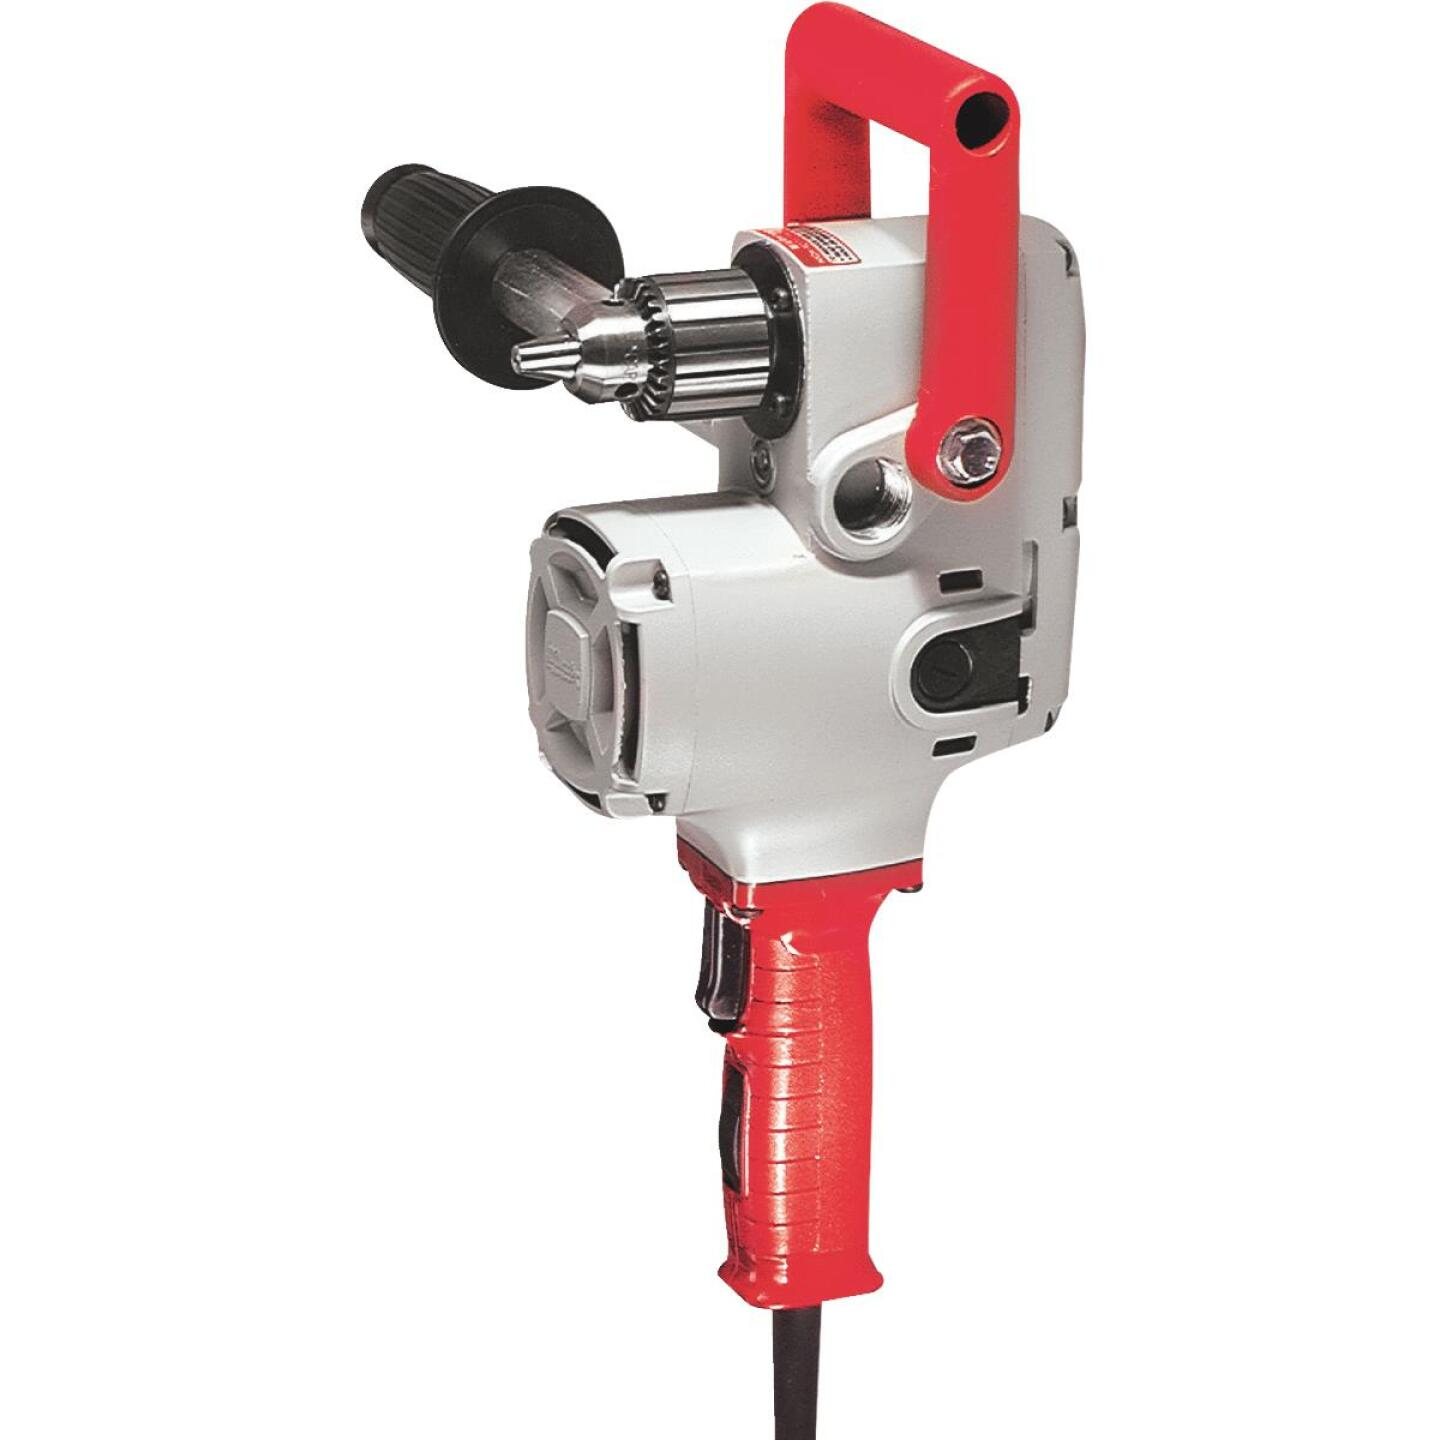 Milwaukee Hole Hawg 1/2 in. 7.5-Amp Keyed Electric Angle Drill Image 1